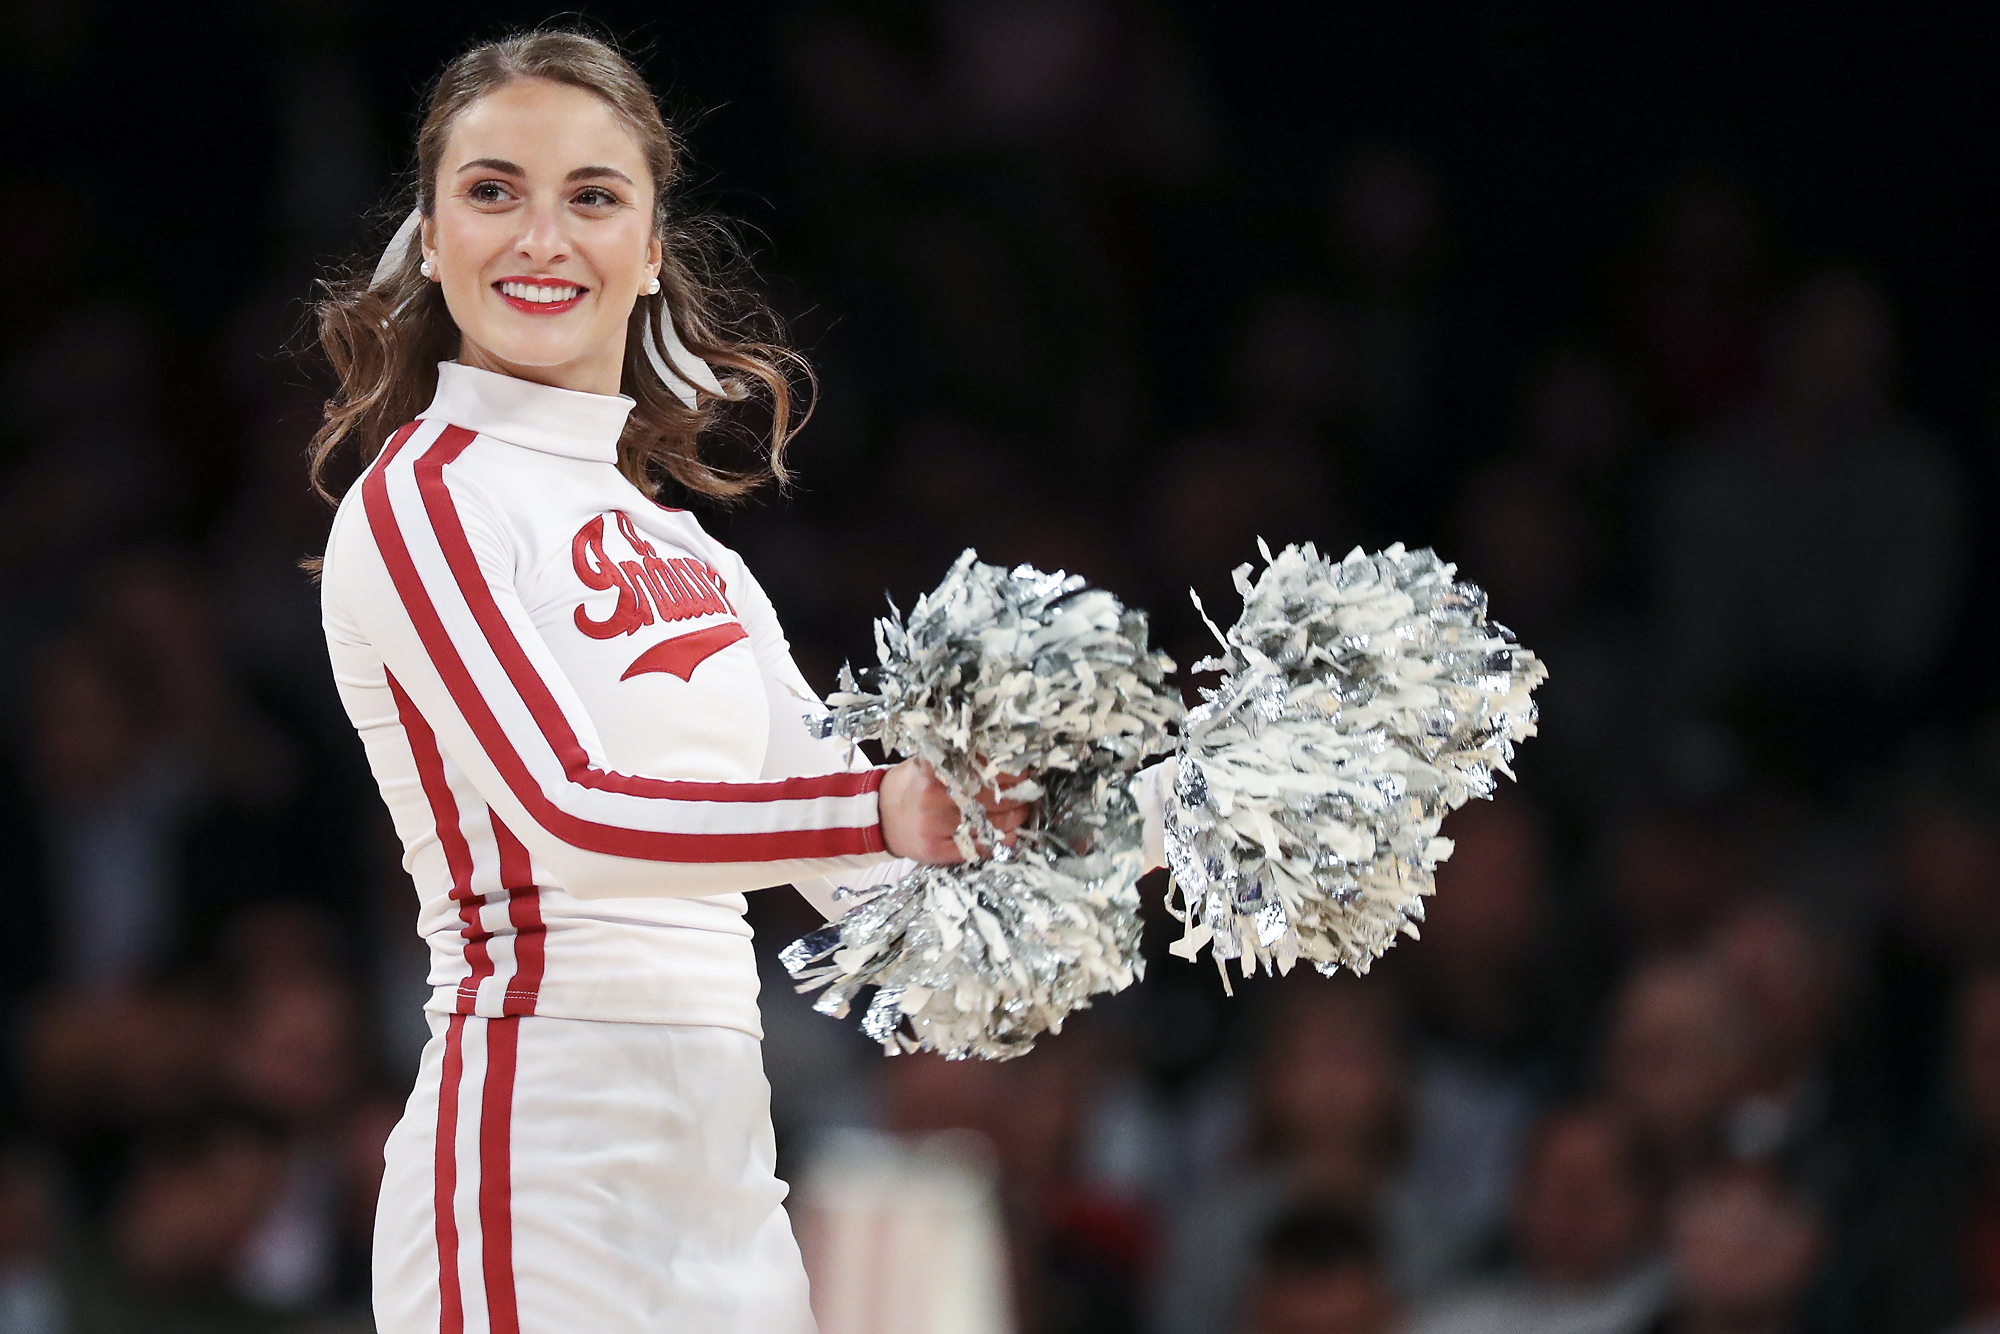 2019 Cheer Spring Selection Clinic Set - Indiana University